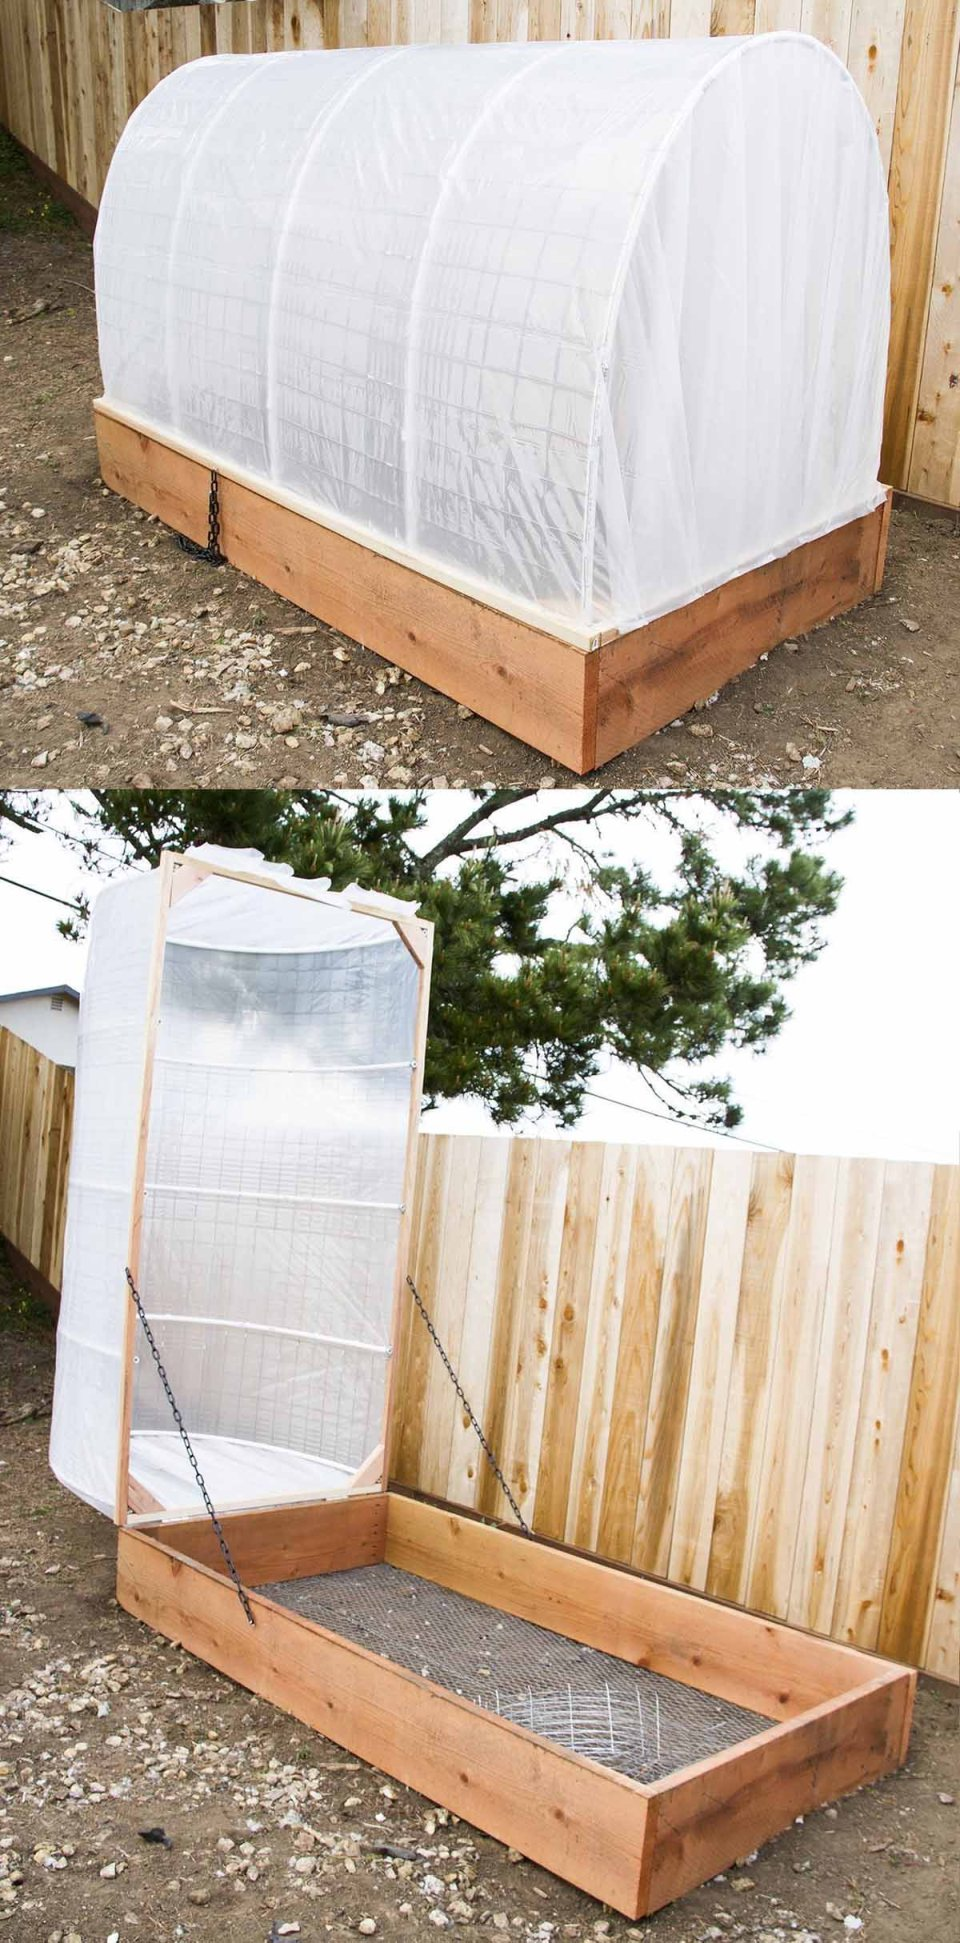 A Rectangular Garden With a Pop-Top Design | Build a beautiful outdoor greenhouse | Creative Greenhouse DIY plans